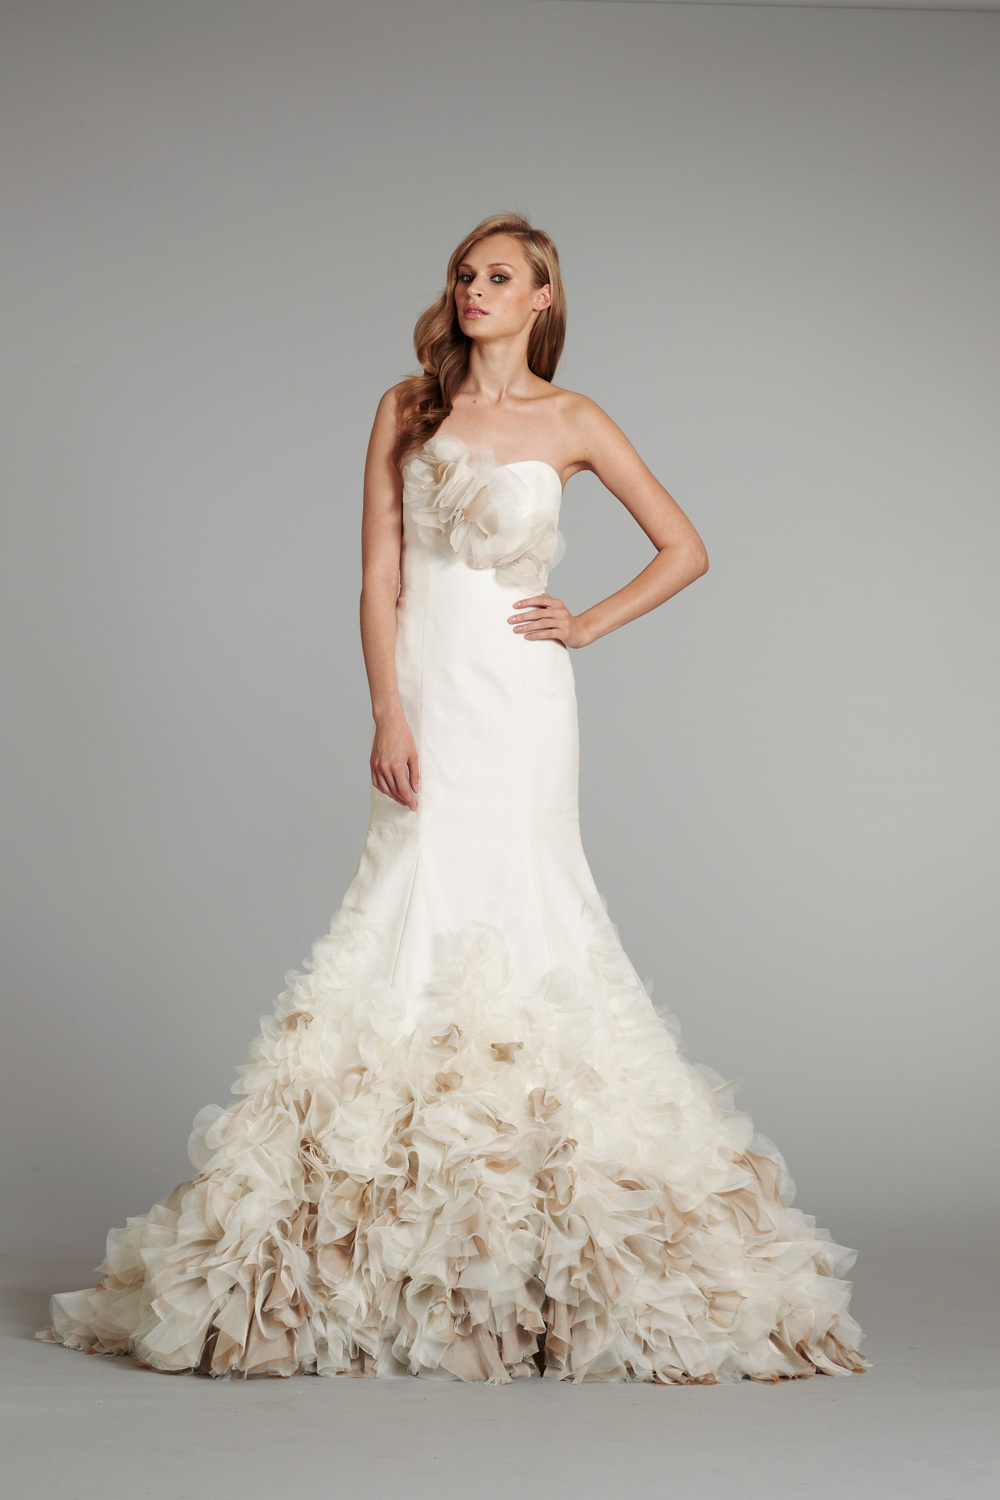 Bridal-gown-wedding-dress-jlm-hayley-paige-fall-2012-babs-front.full